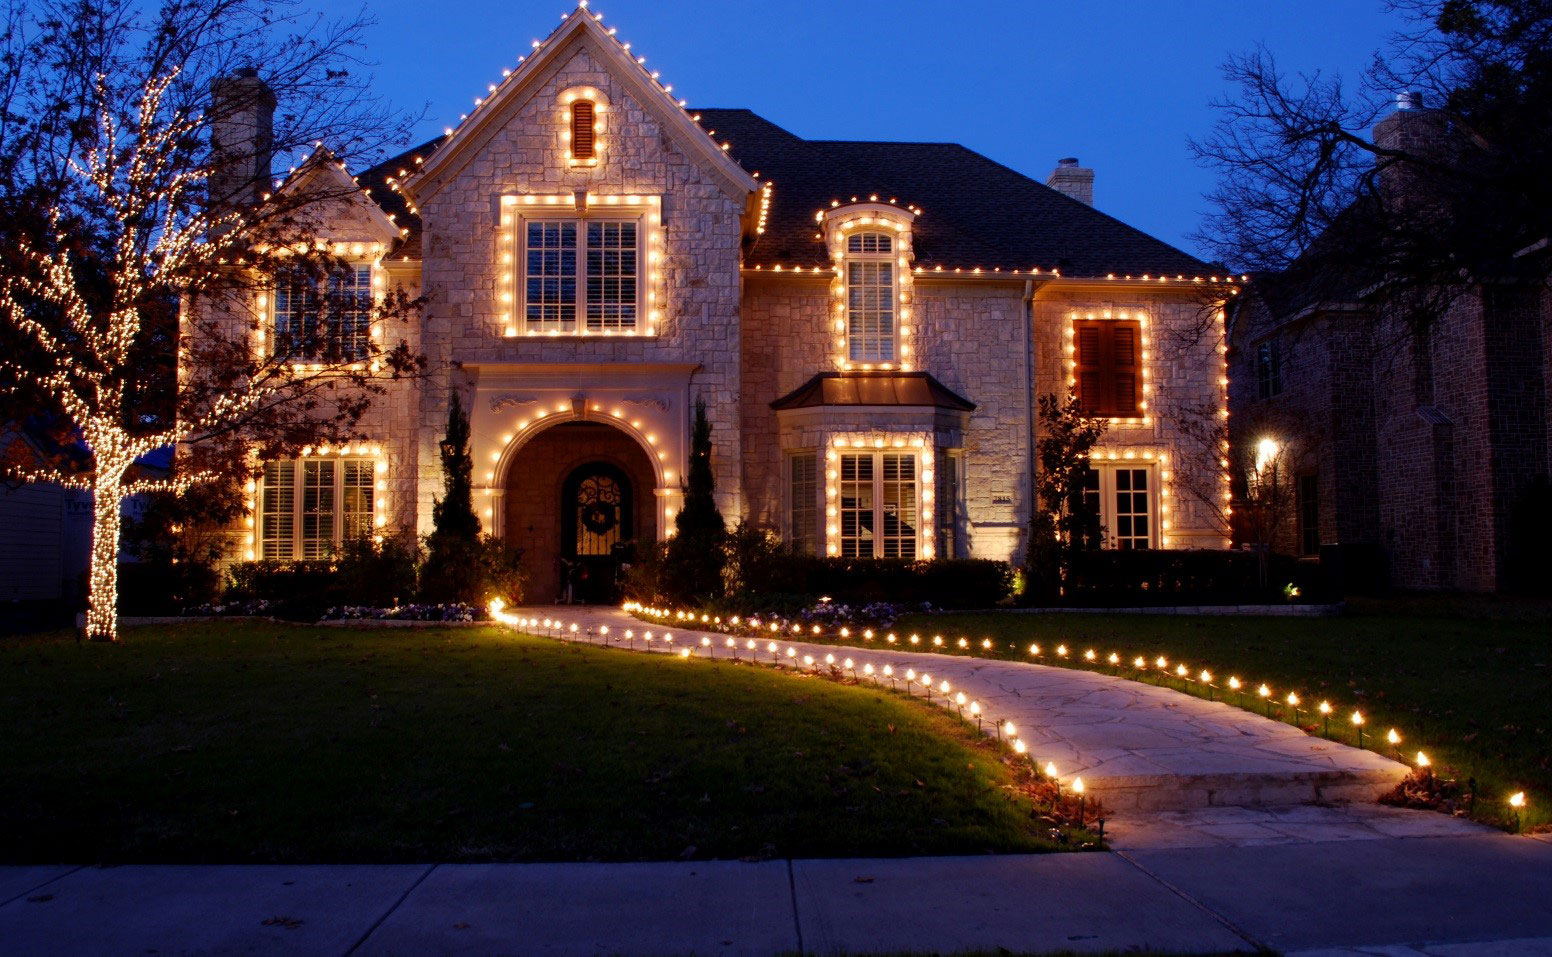 Call now to speak to a queens lighting specialist 646 833 0843